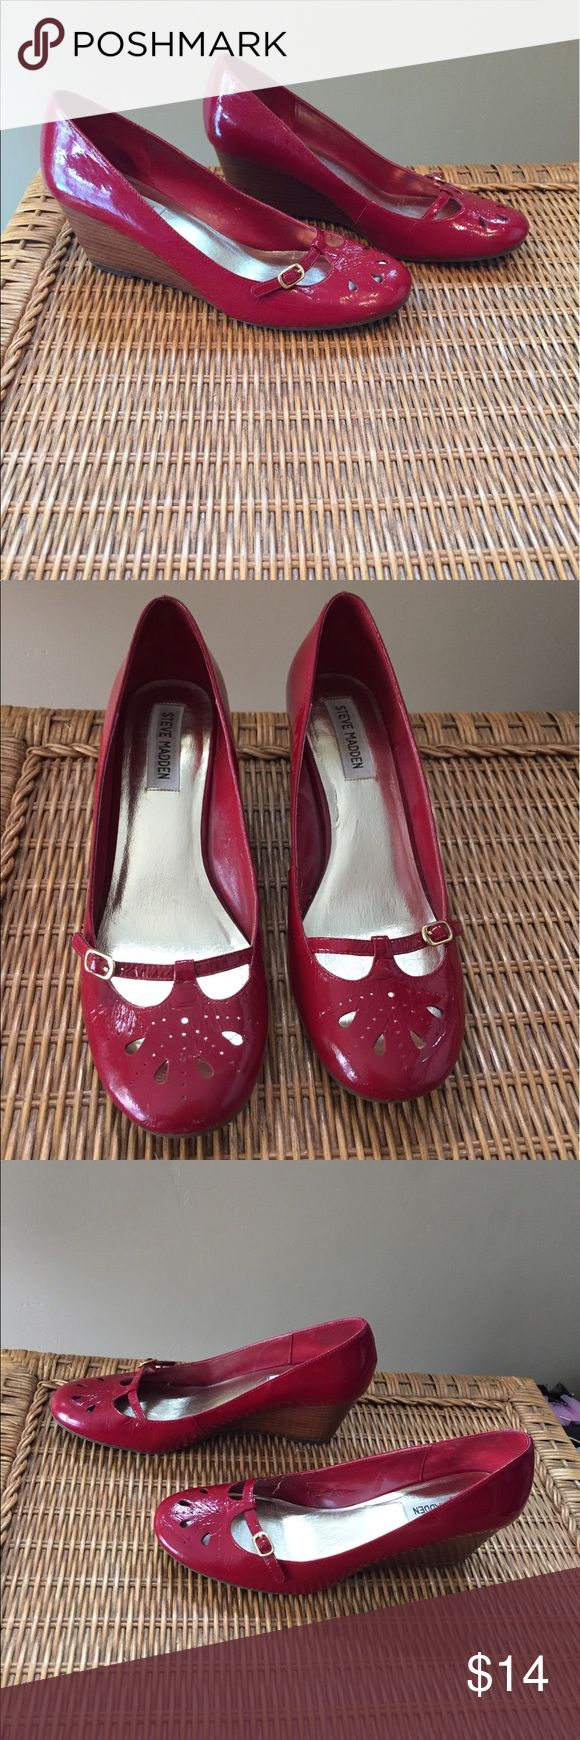 """Steve Madden Red Wedges Shoes """"Parlez"""" (run small) Cute shoes in very good condition. Reviewers on Amazon say these shoes run small, probably fit a size 8 (or borderline 7.5) instead of 8.5. 👗👚👜Check out the $6 section of closet (before sold items). 15% bundle discount on 2+ items. 🚫NO TRADES 🚫NO MODELING🚫 Steve Madden Shoes Wedges"""